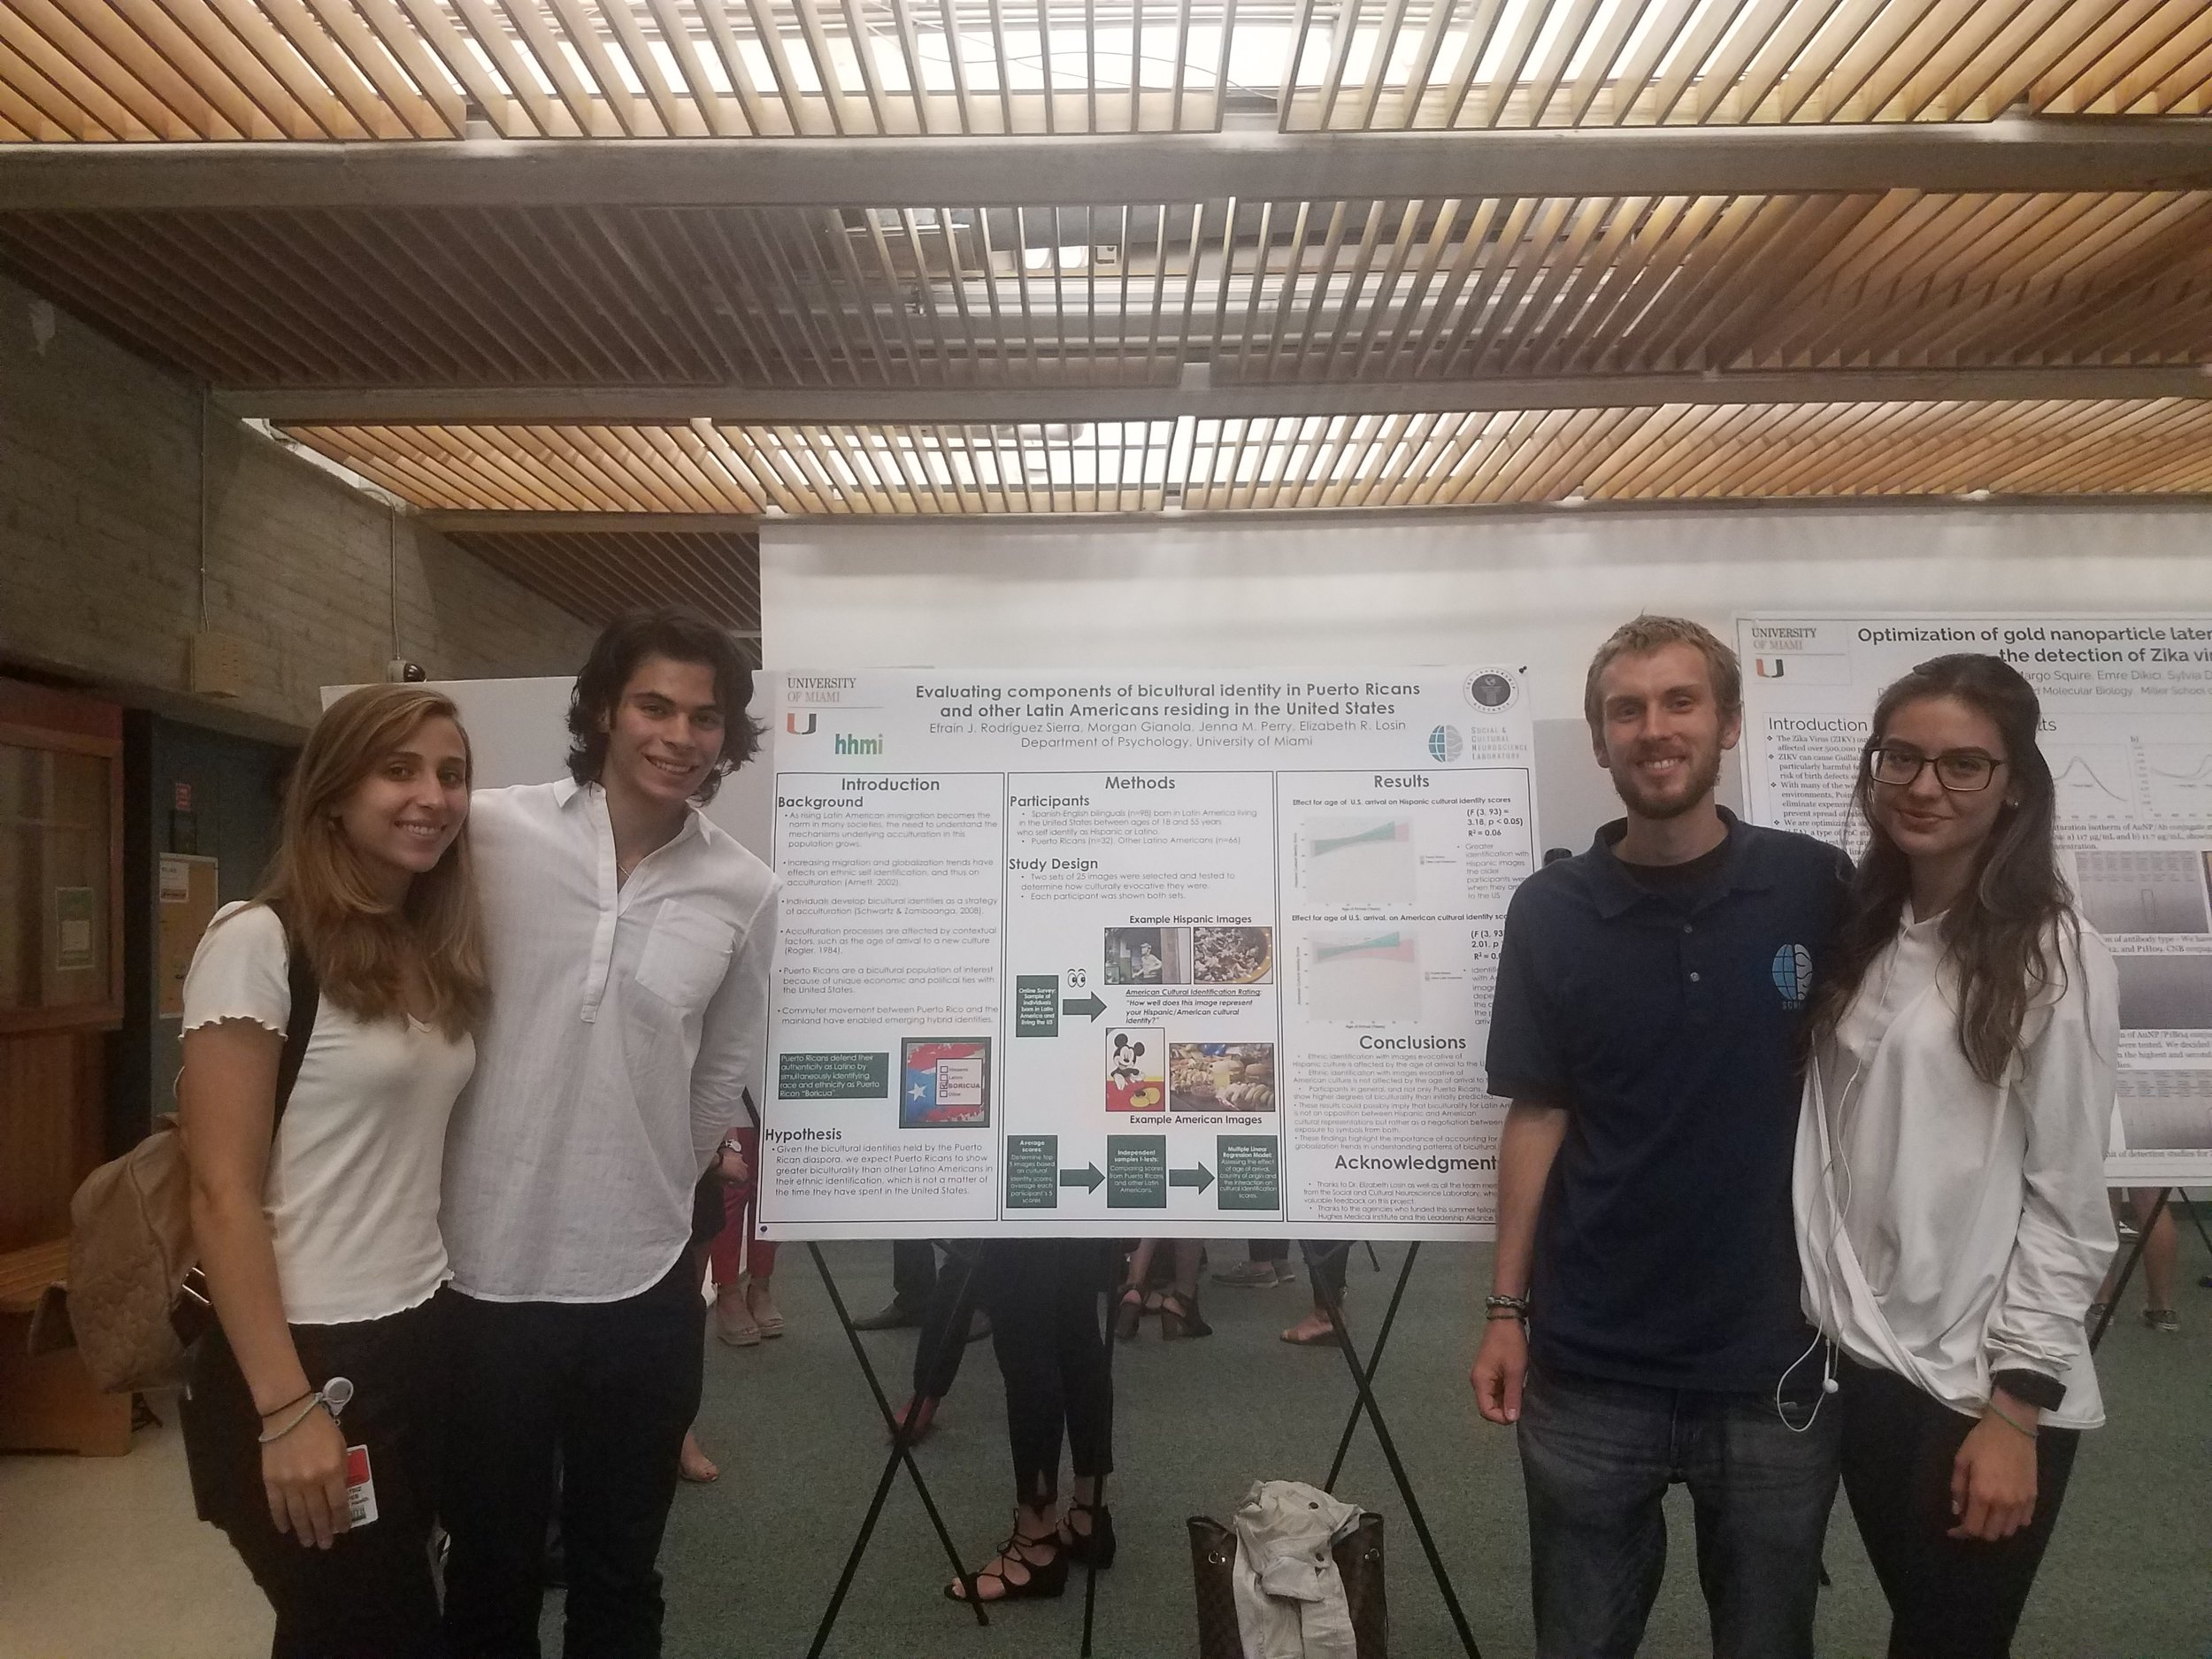 The study team poses with Efra's poster.  From left to right : Beatriz Yepes, Efrain Rodriguez Sierra, Morgan Gianola, Sofia Mercer.